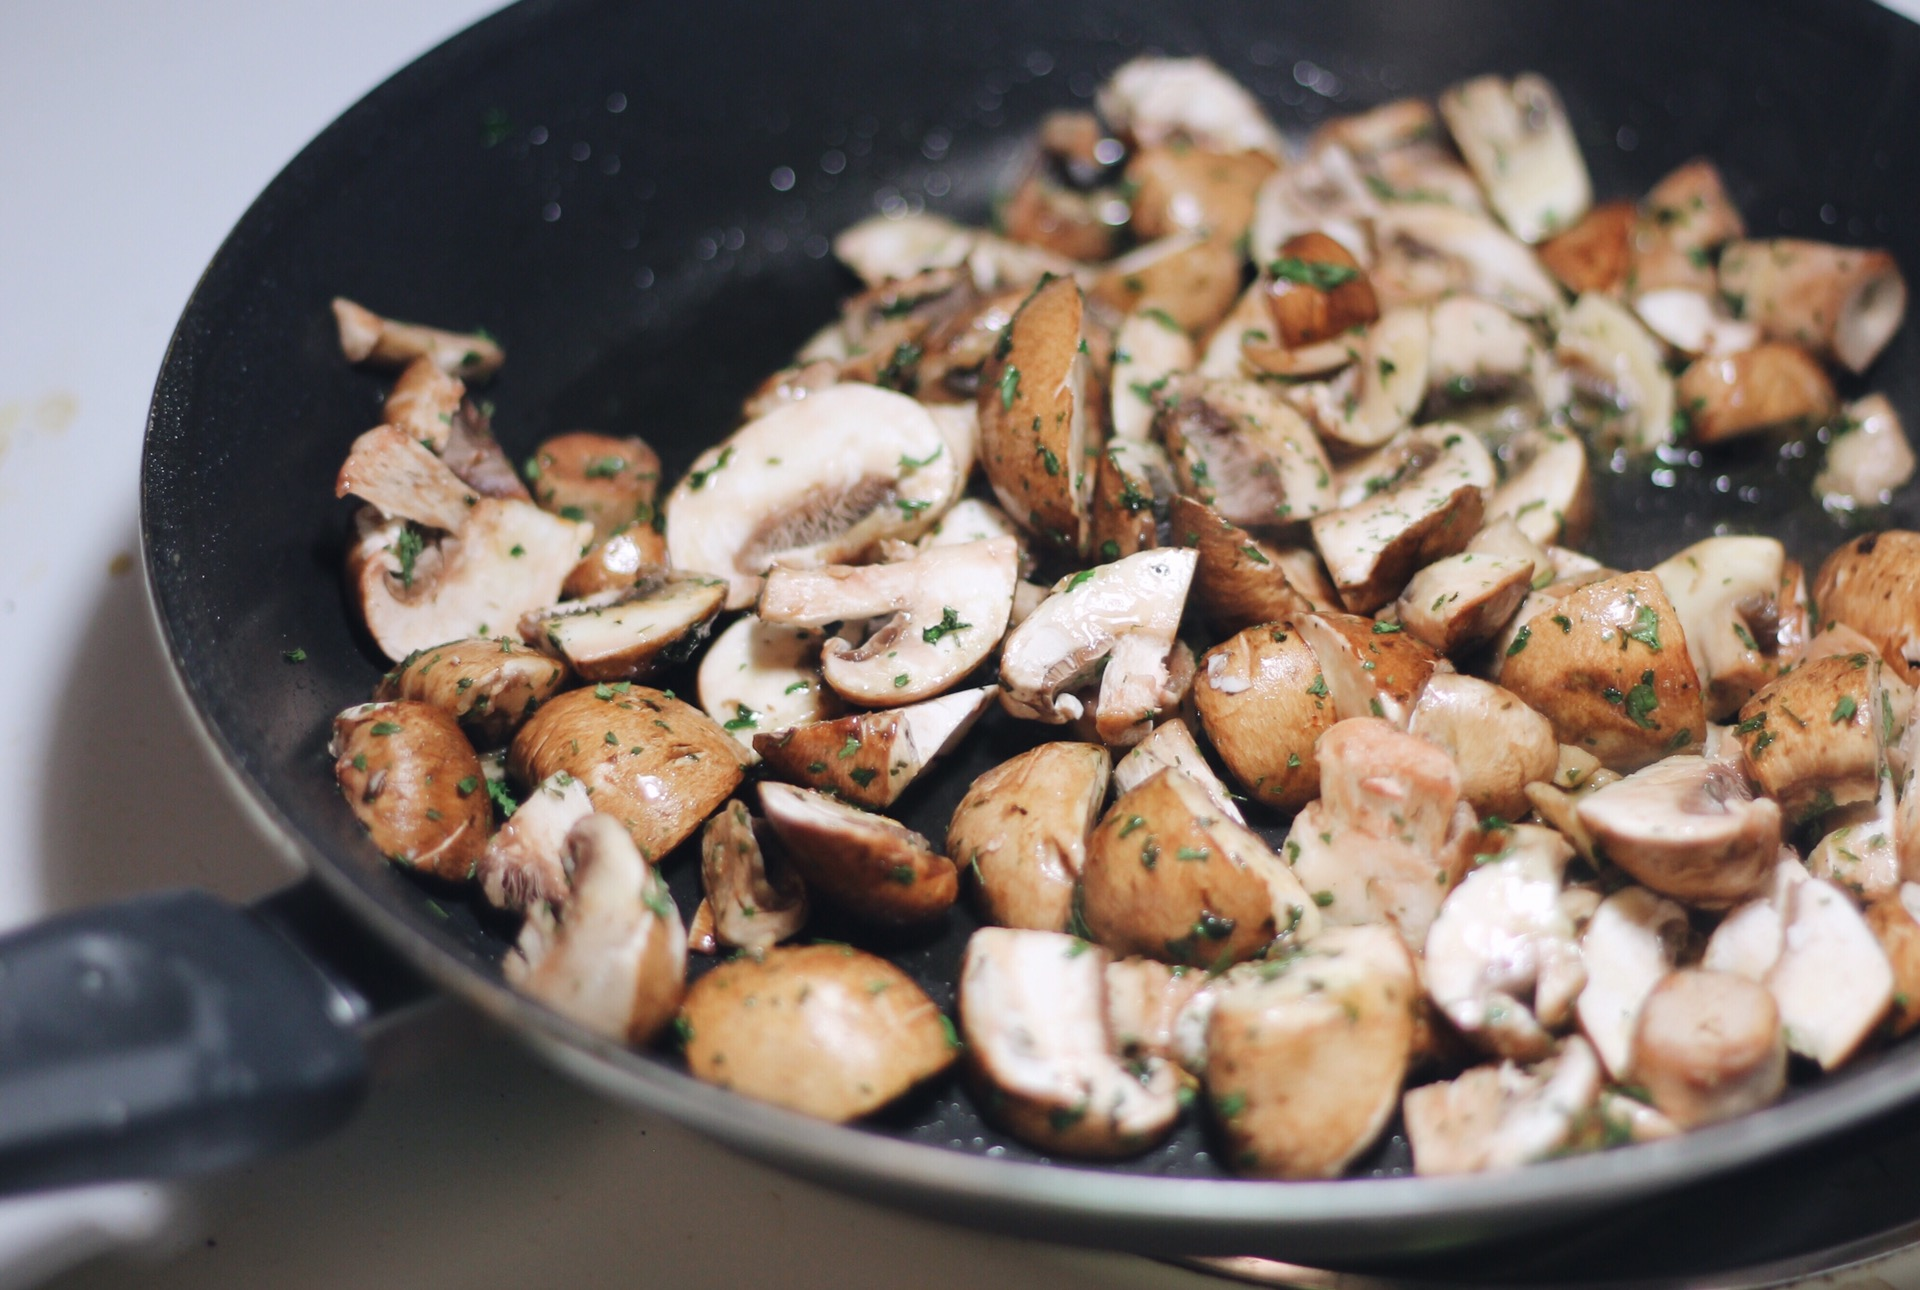 Easy recipe Creamy Parmesan Garlic Mushroom Chicken